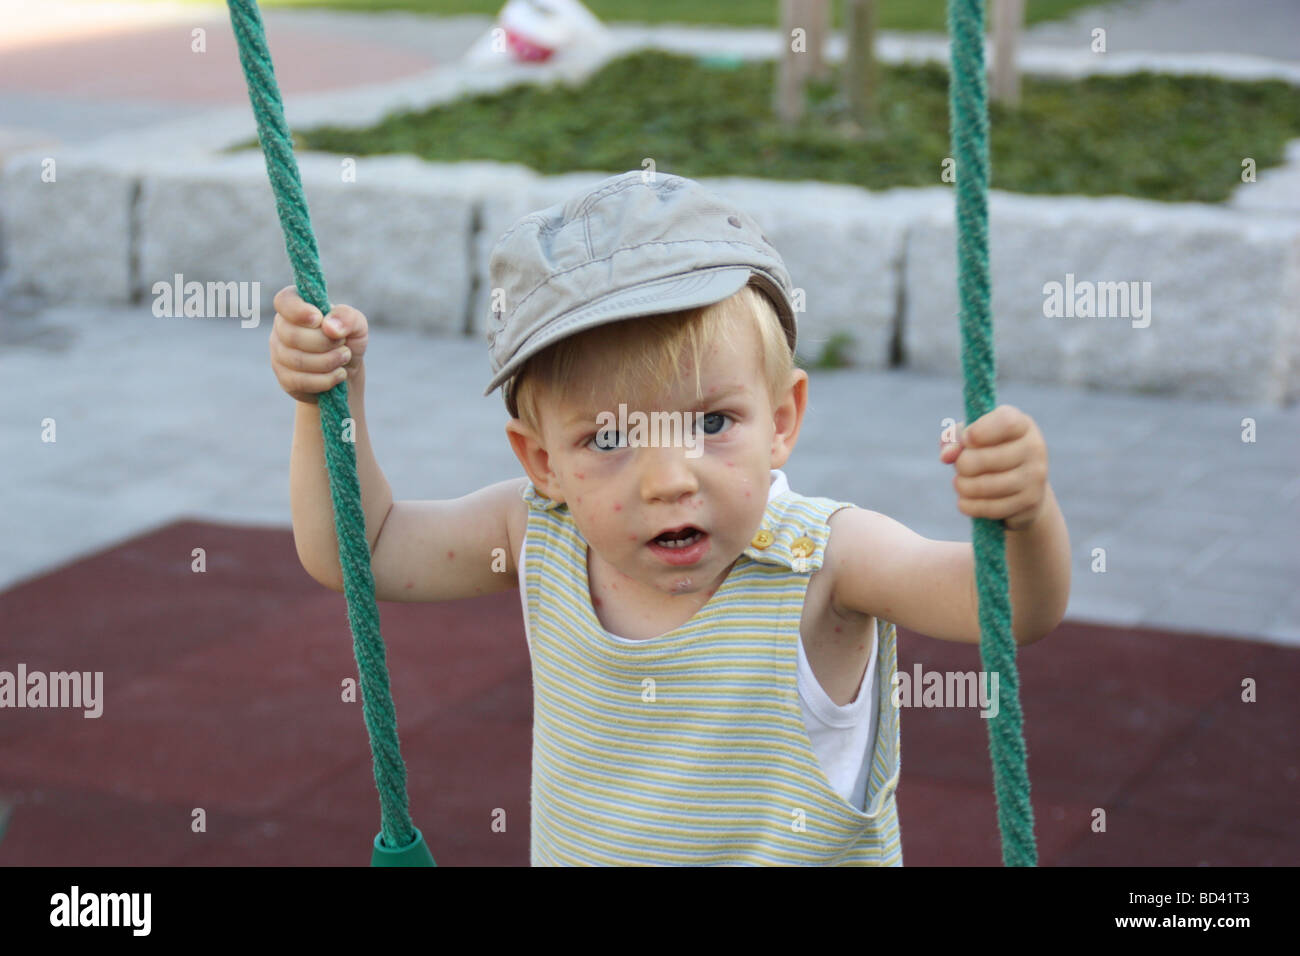 2-year-old boy with chickenpox nevertheless enjoying the playground. - Stock Image